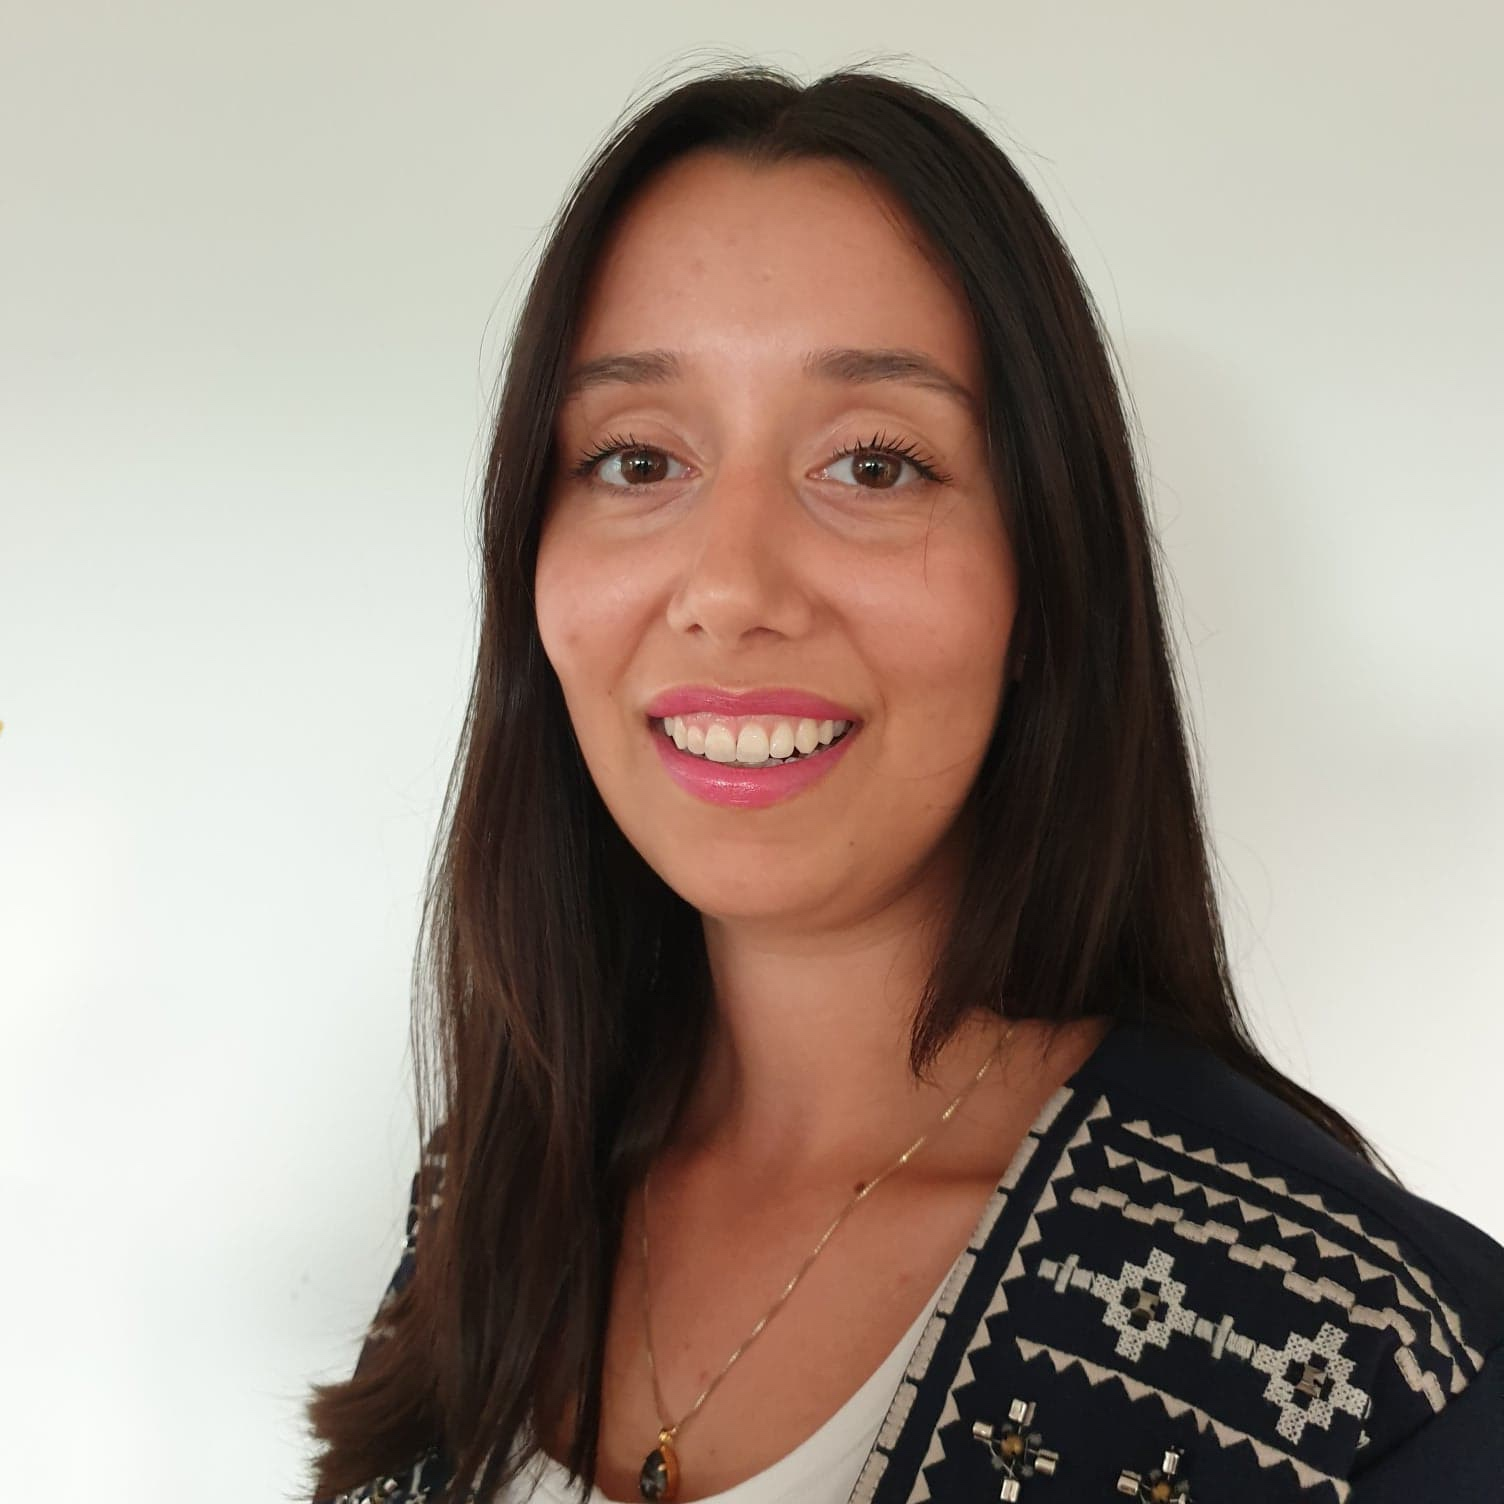 Helena Samaras - Project Manager and Producer